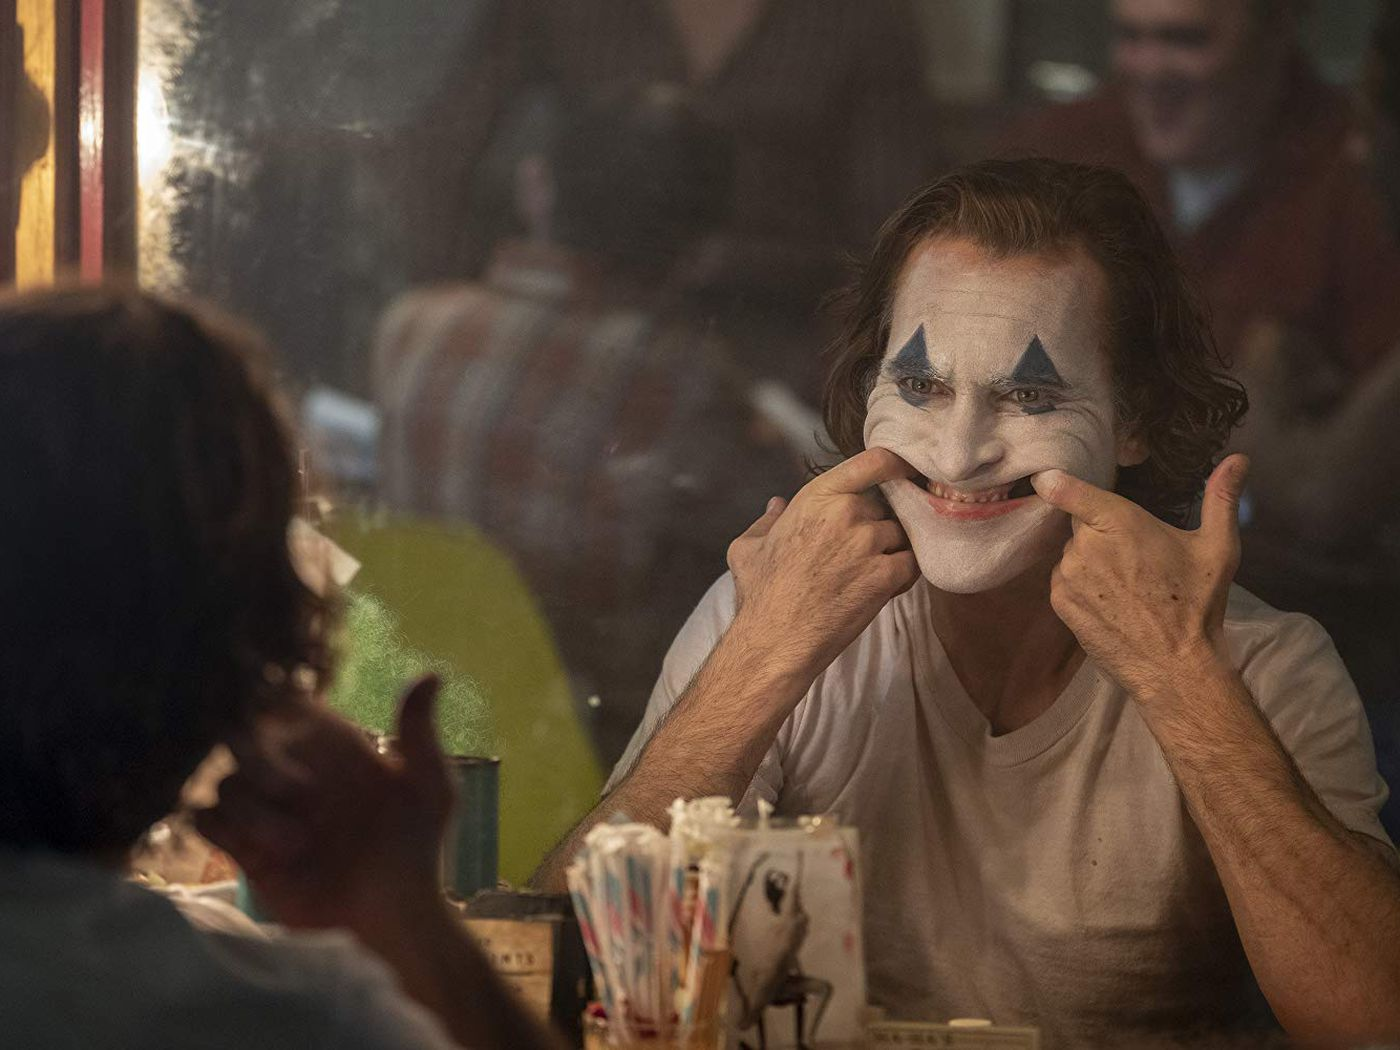 The fight over Joaquin Phoenix's Joker movie, explained - Vox